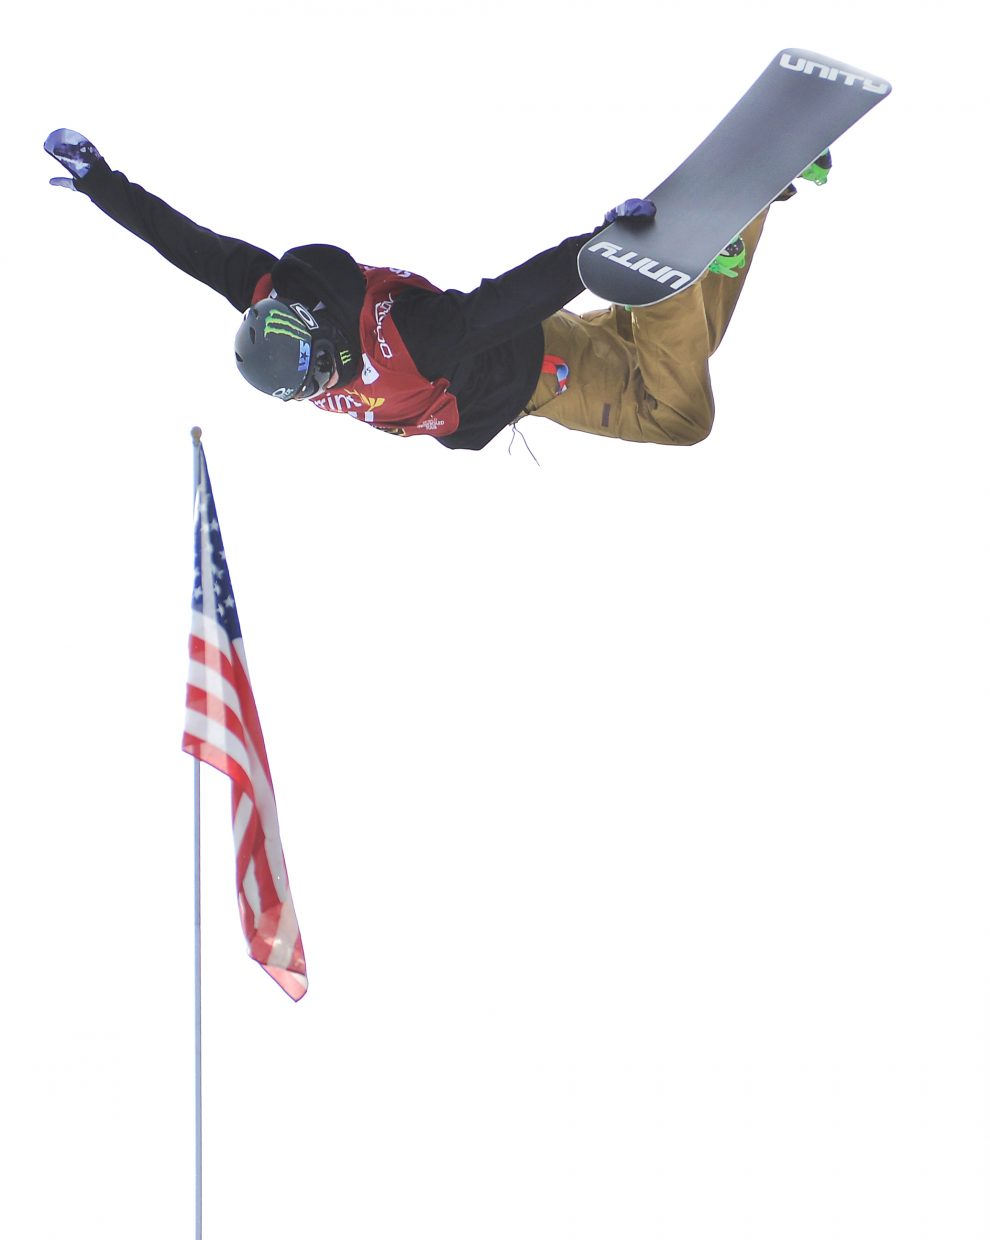 Taylor Gold flies high Saturday at the US Grand Prix World Cup snowboard event at Copper Mountain. He won the event.